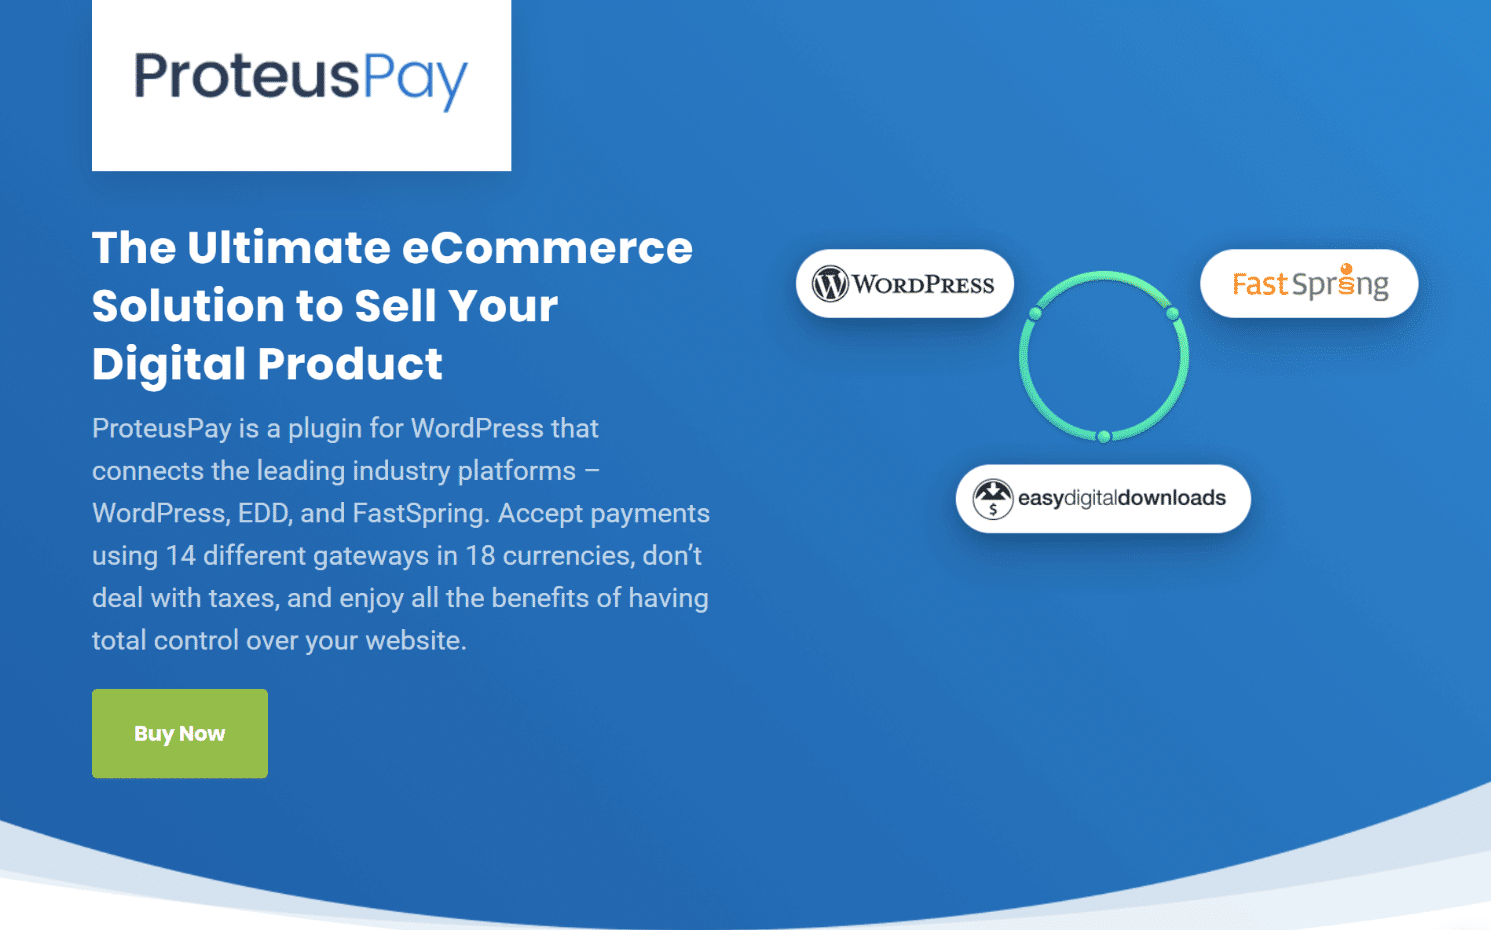 ProteusPay for ecommerce